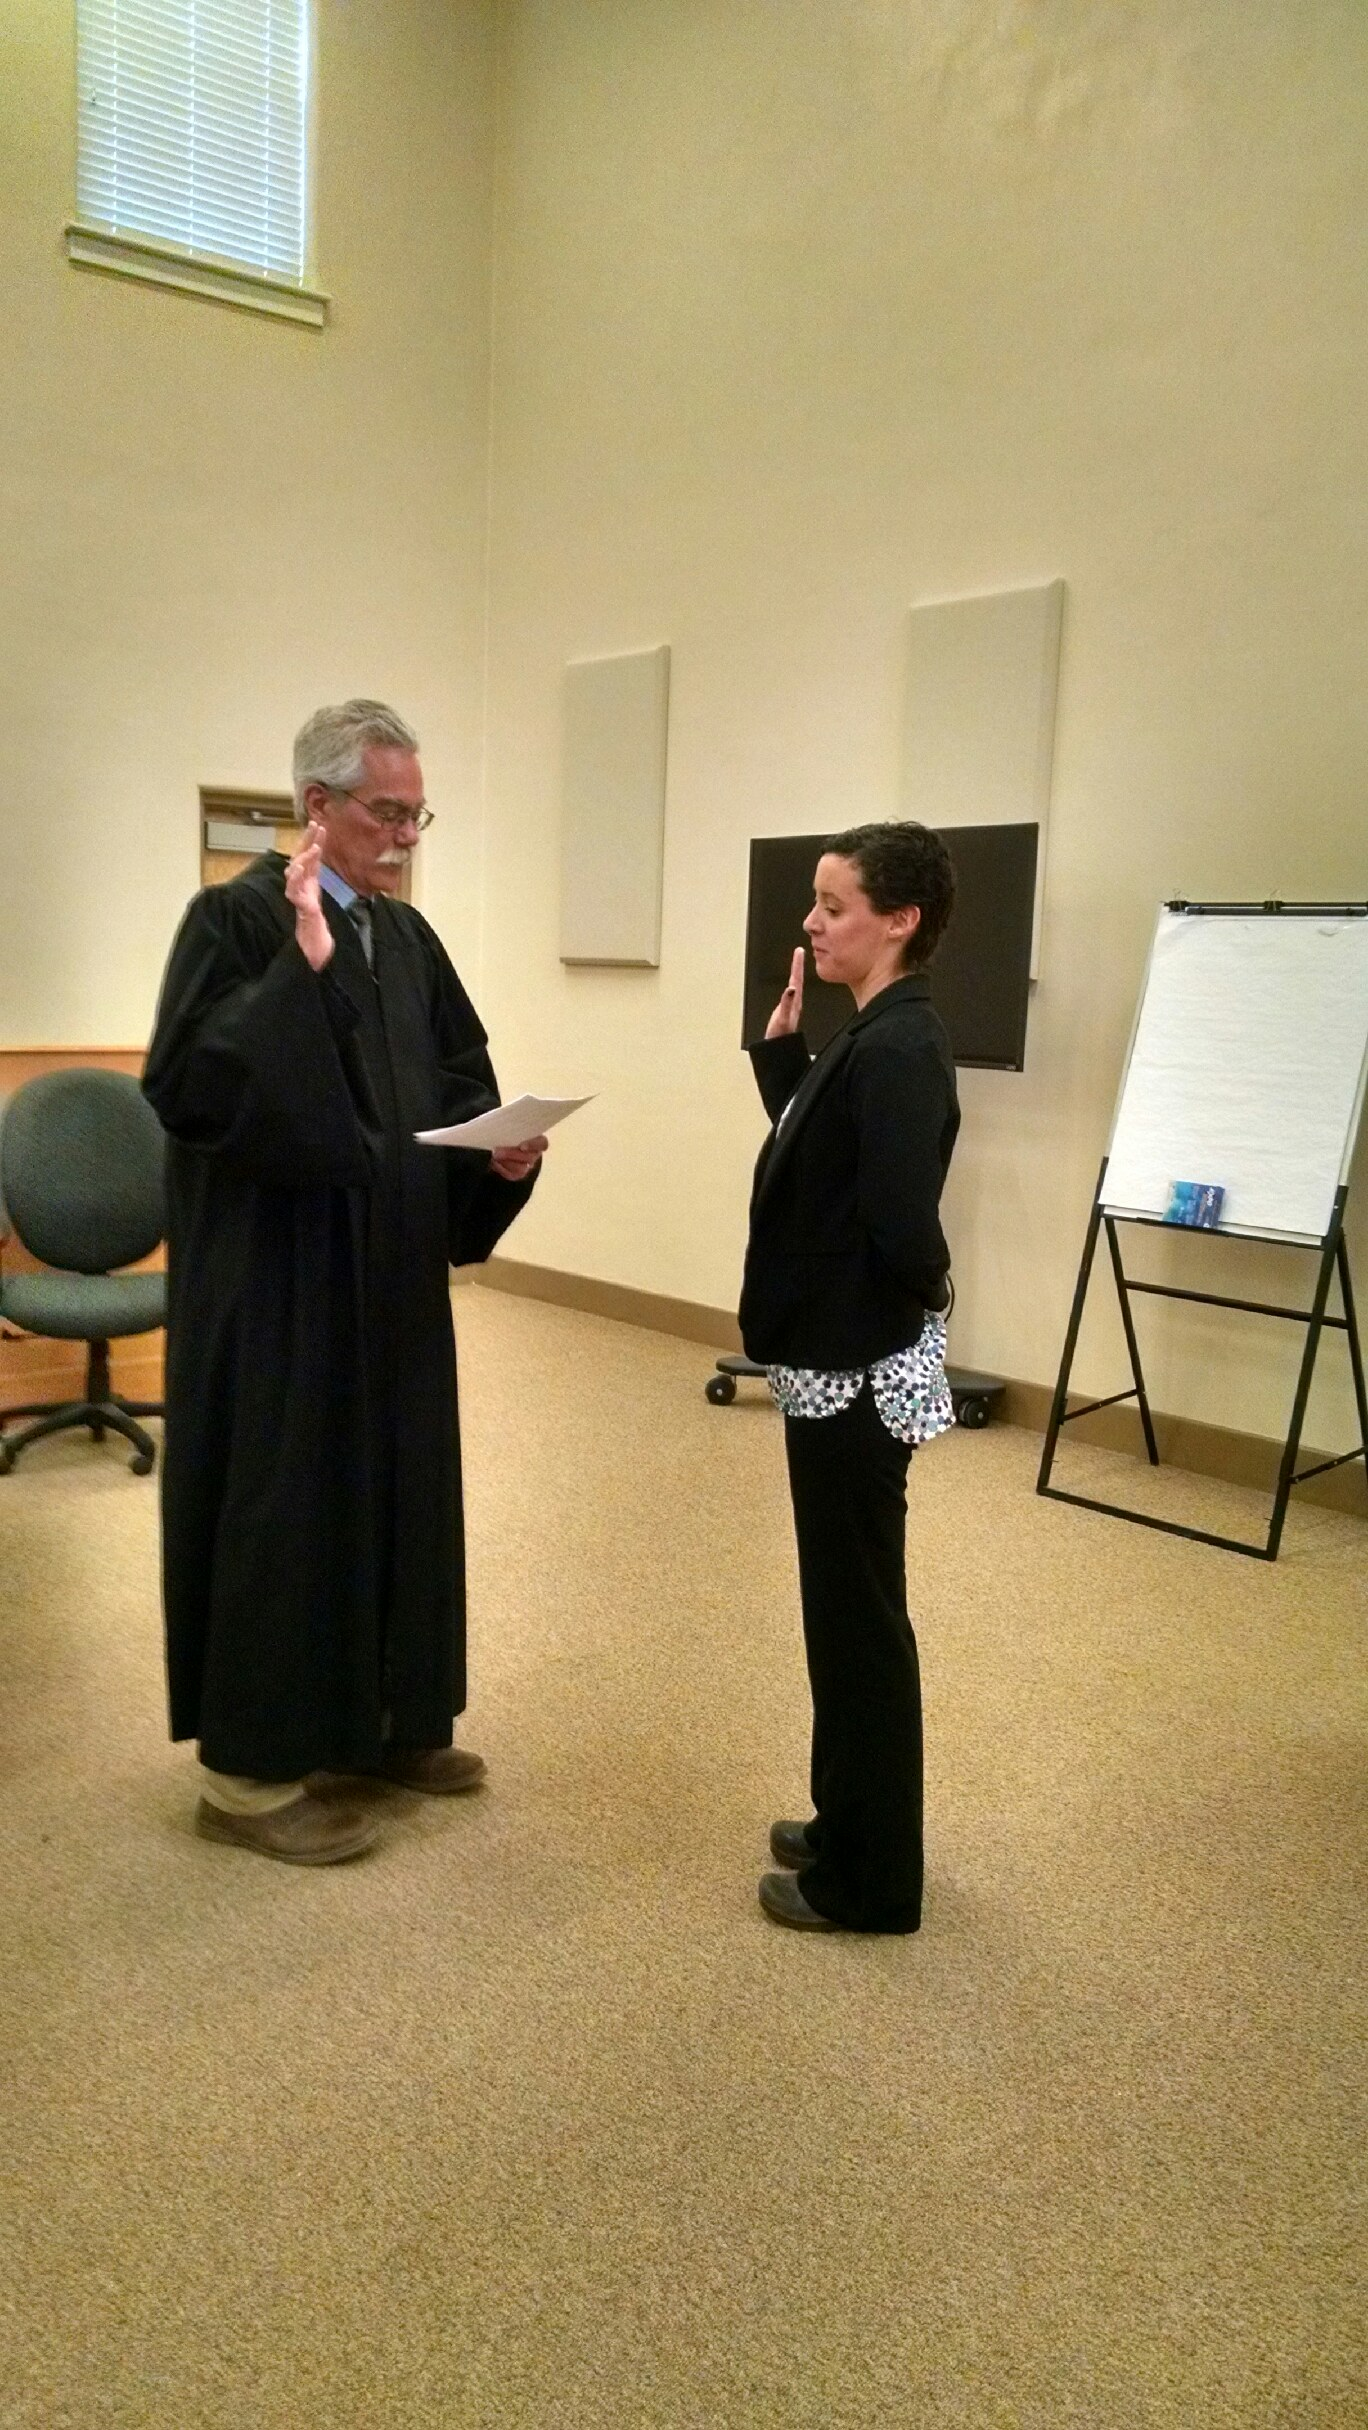 Volunteer Maria Weir is sworn in by Judge Matthew Reynolds.